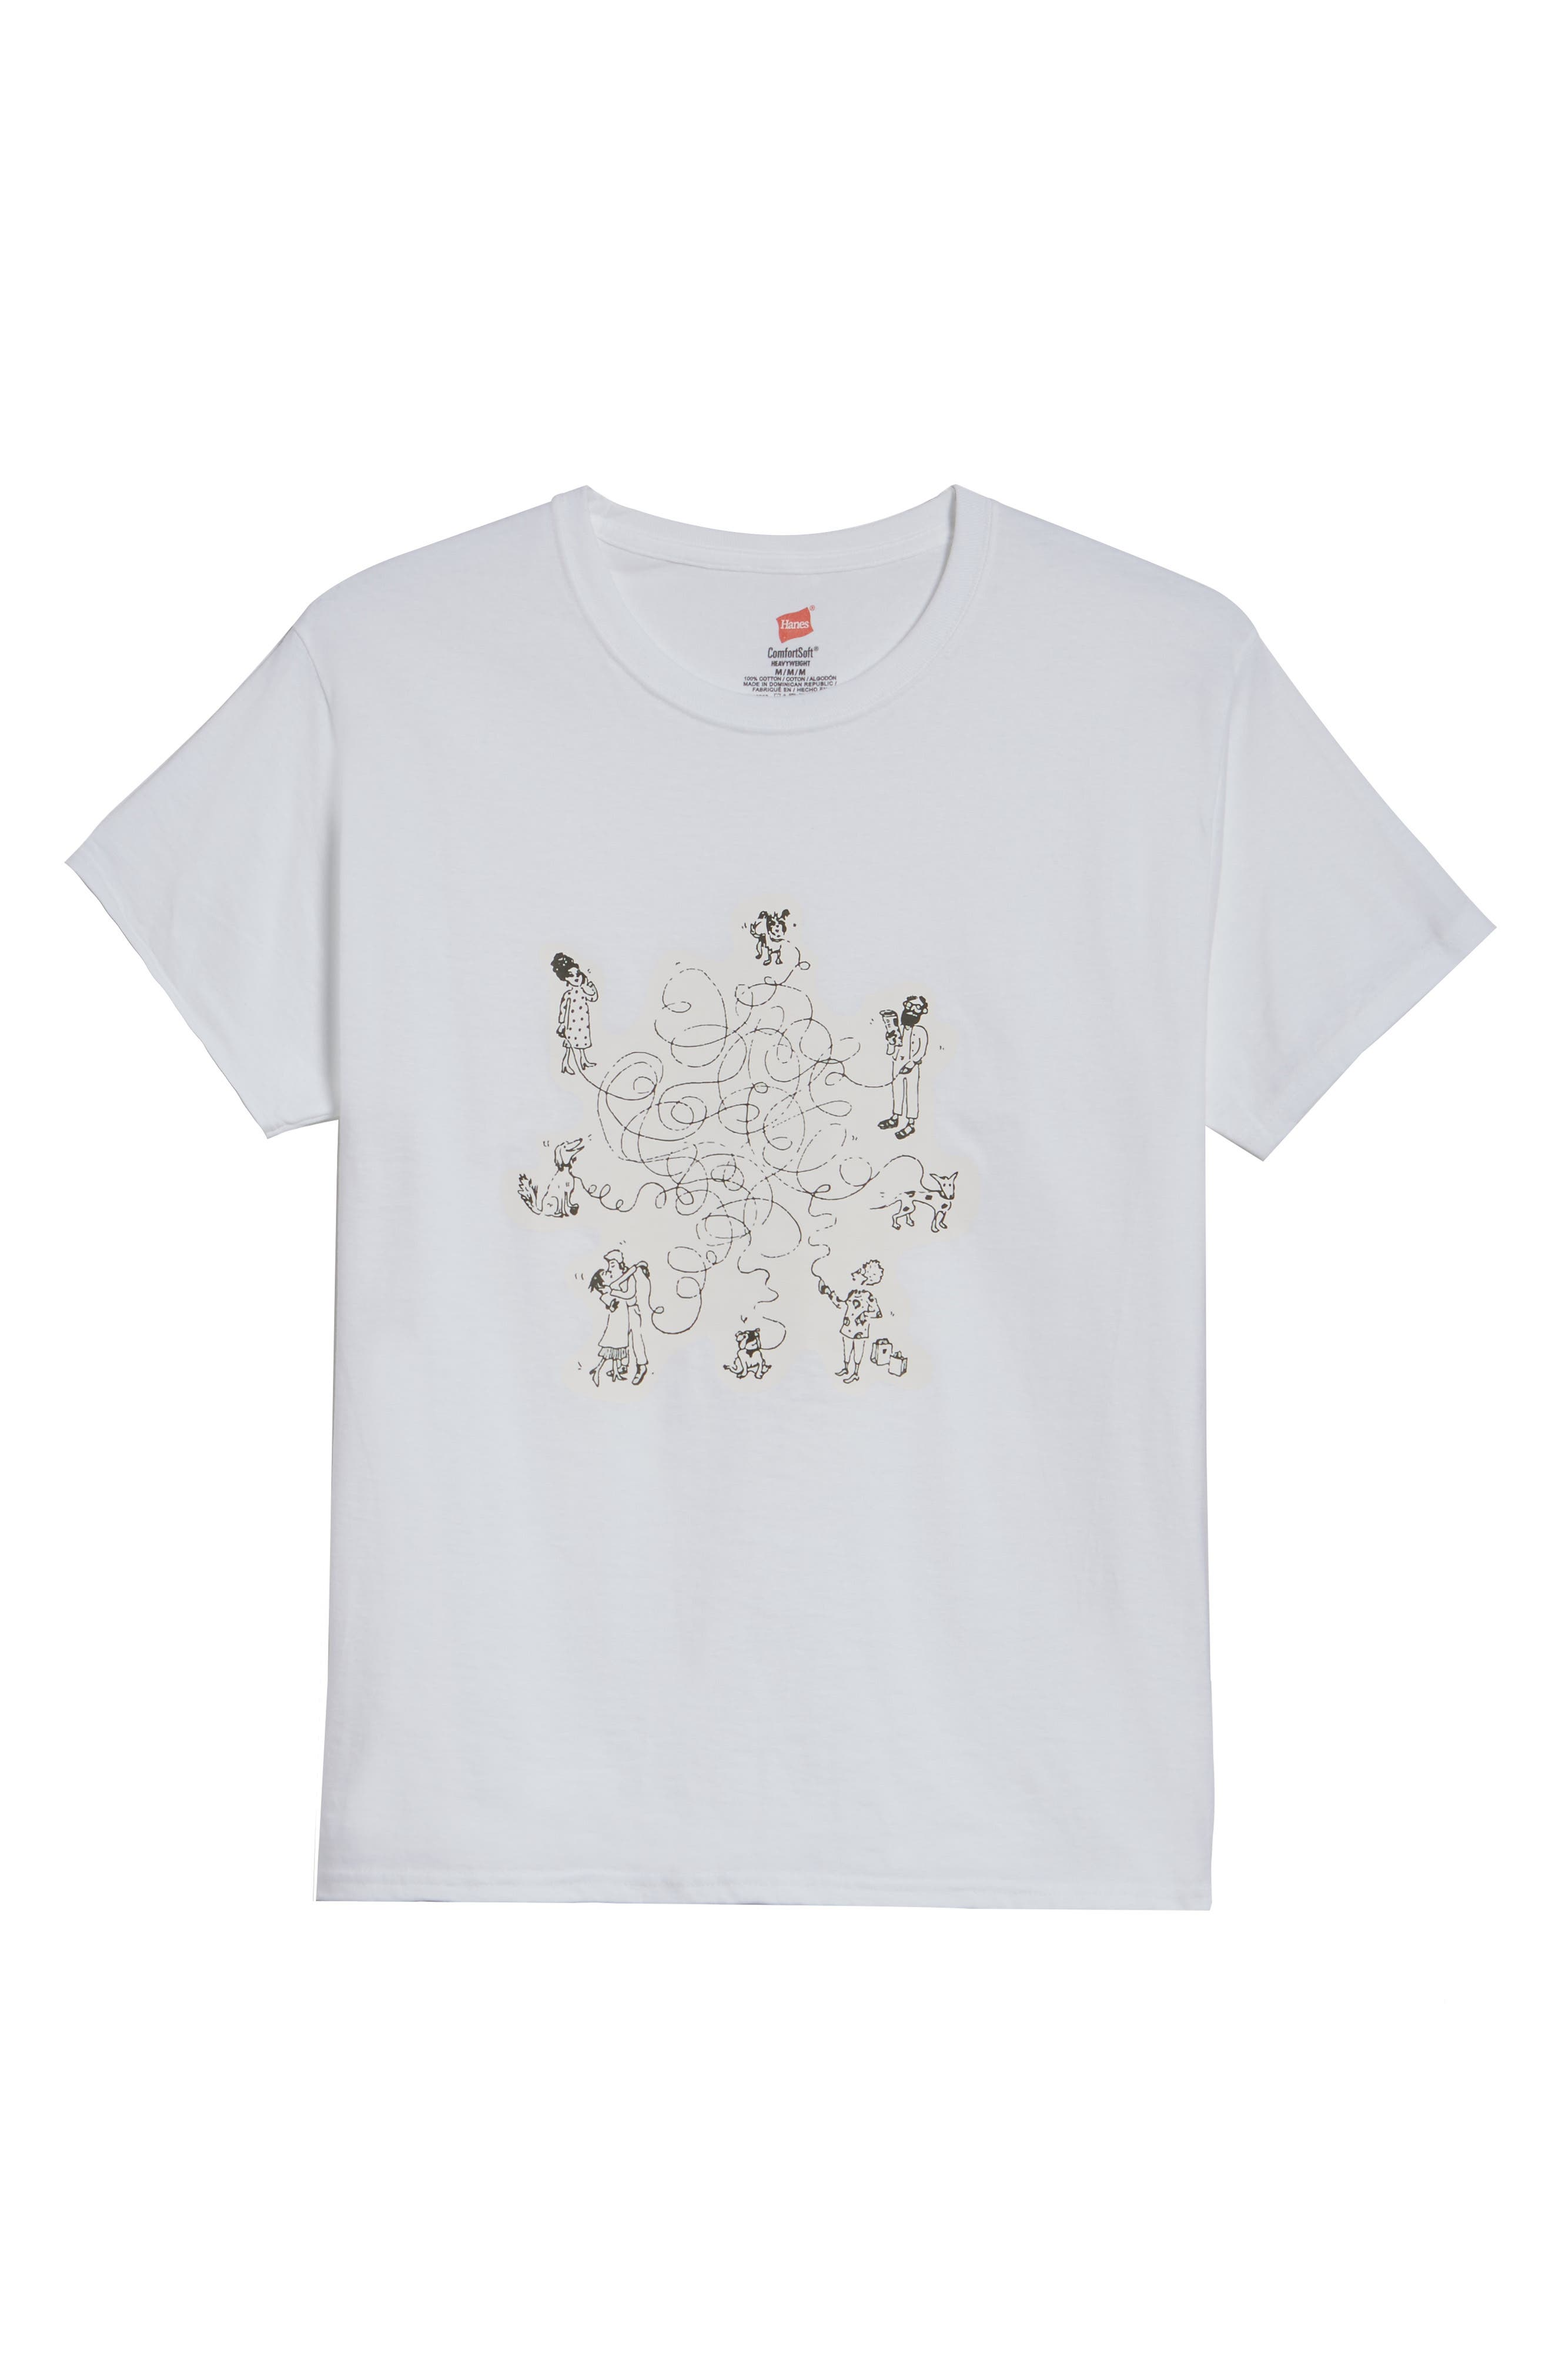 Joana Avillez Tangled Dog Walker Group Tee